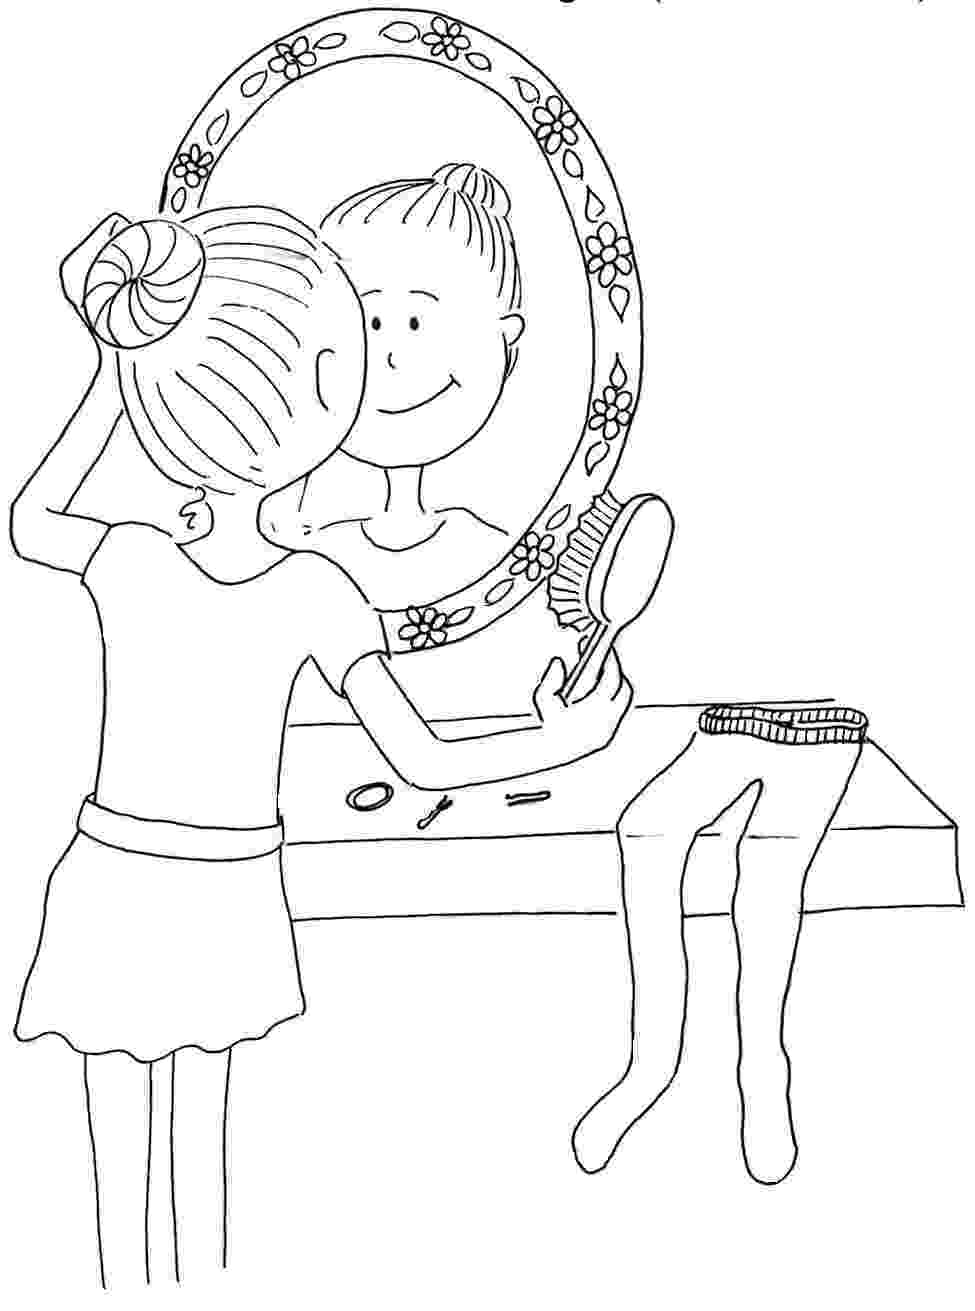 dancing coloring pages dance coloring pages to download and print for free pages dancing coloring